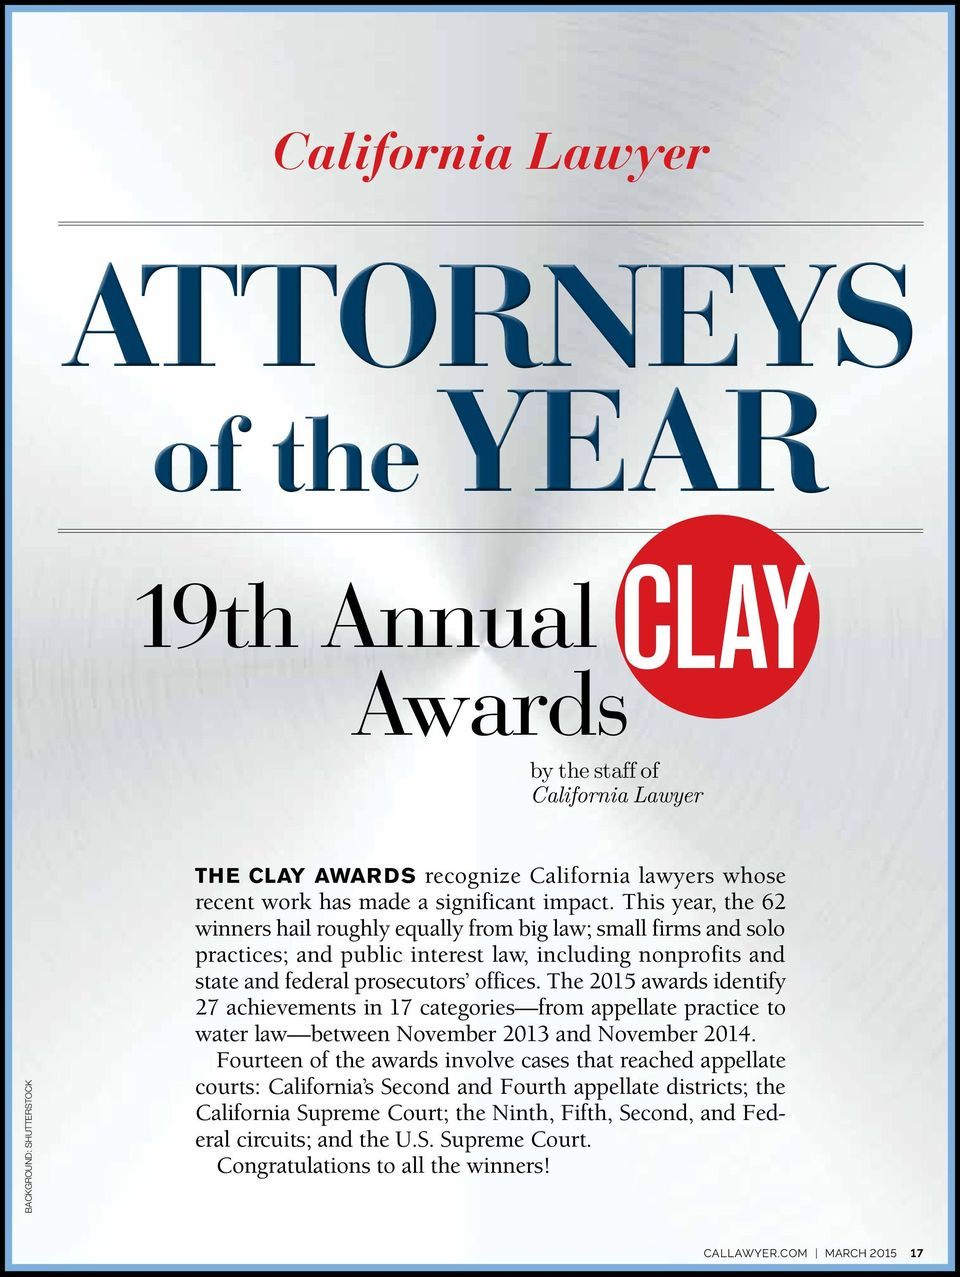 This year, the 62 winners hail roughly equally from big law; small firms and solo practices; and public interest law, including nonprofits and state and federal prosecutors offices.